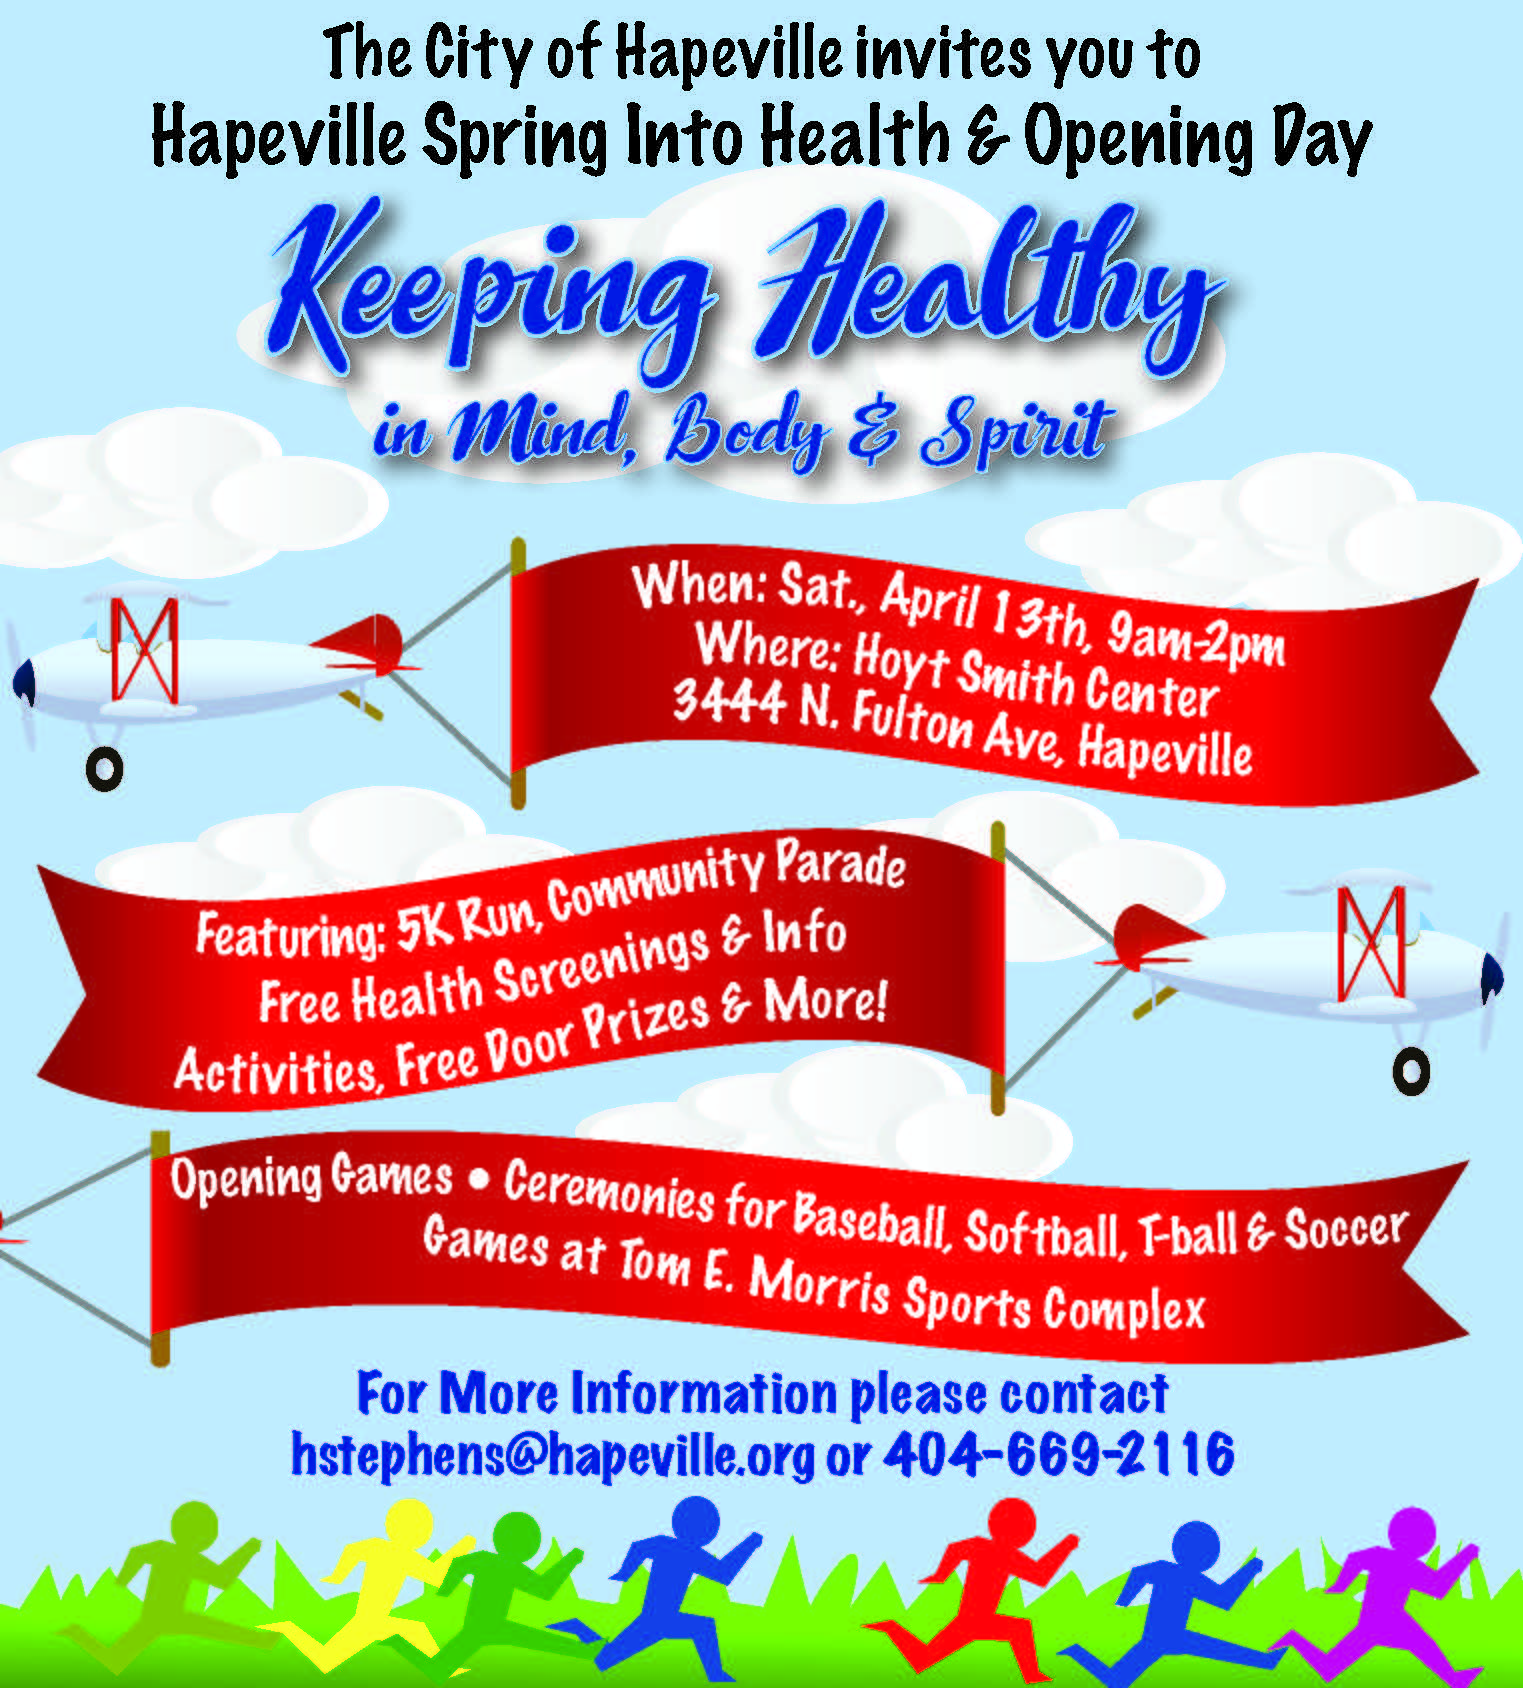 HapevilleSpringintoHealth_85South.jpg